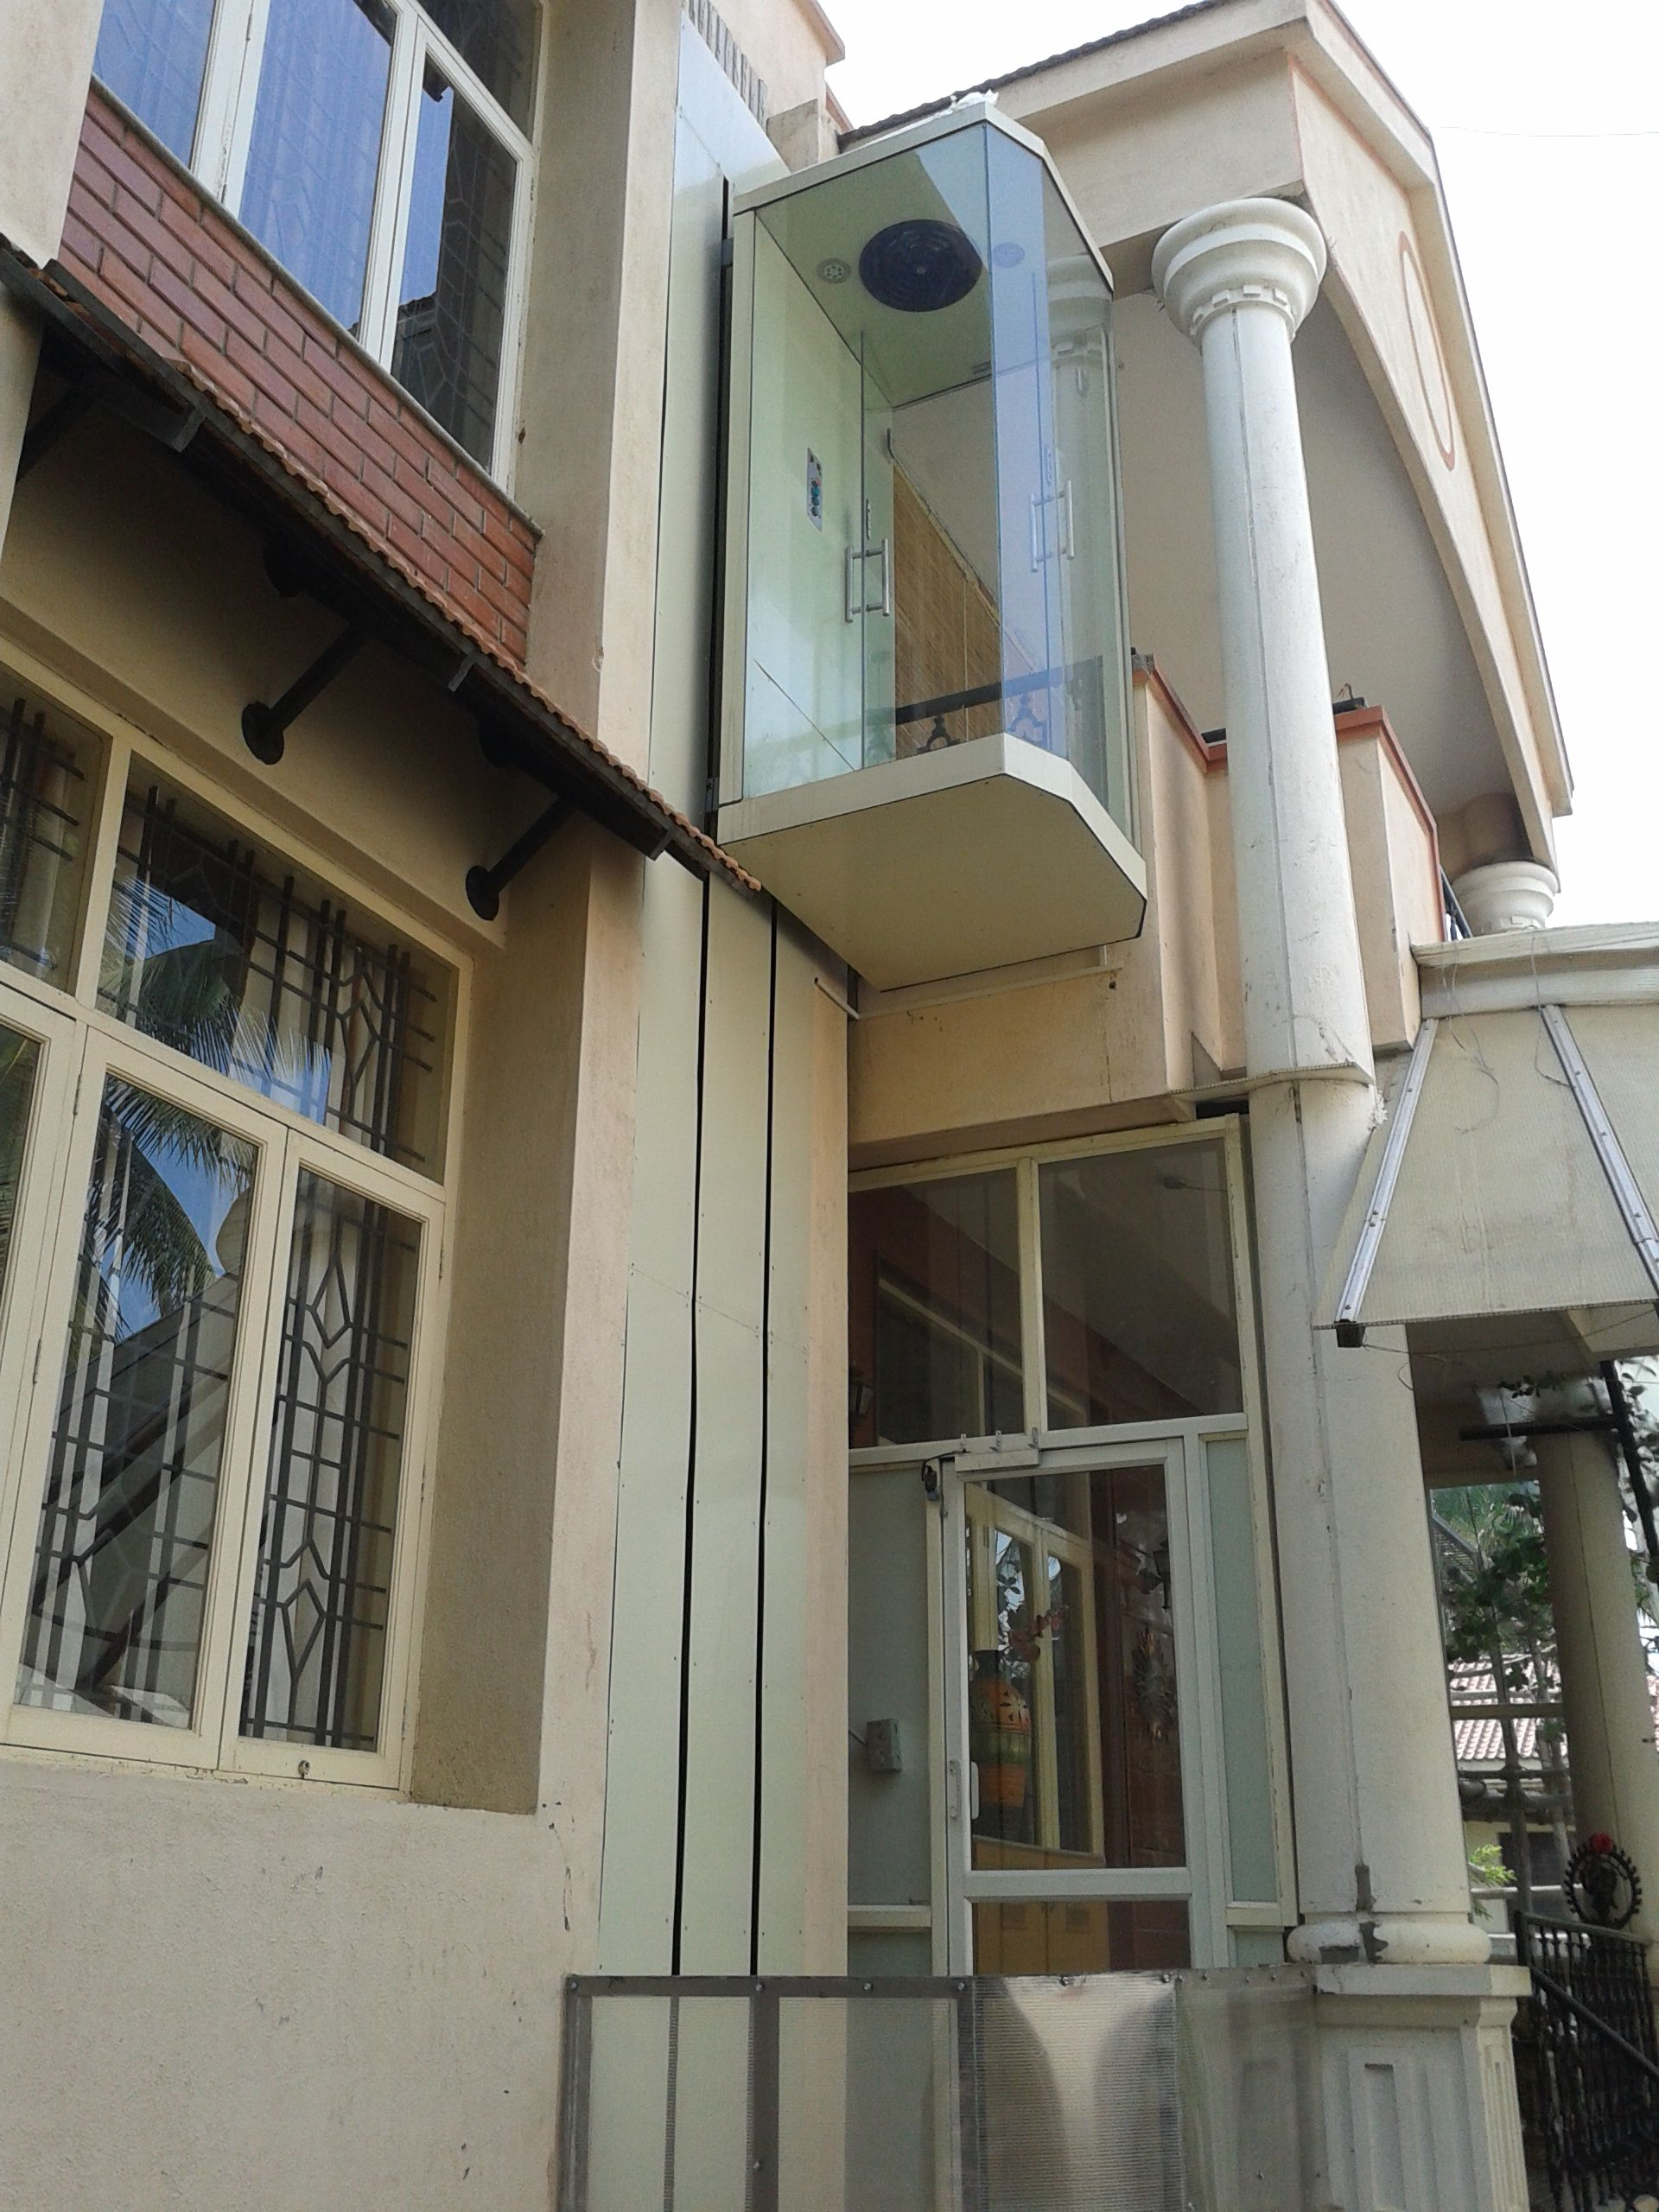 Residential Exterior Lifts Elevator